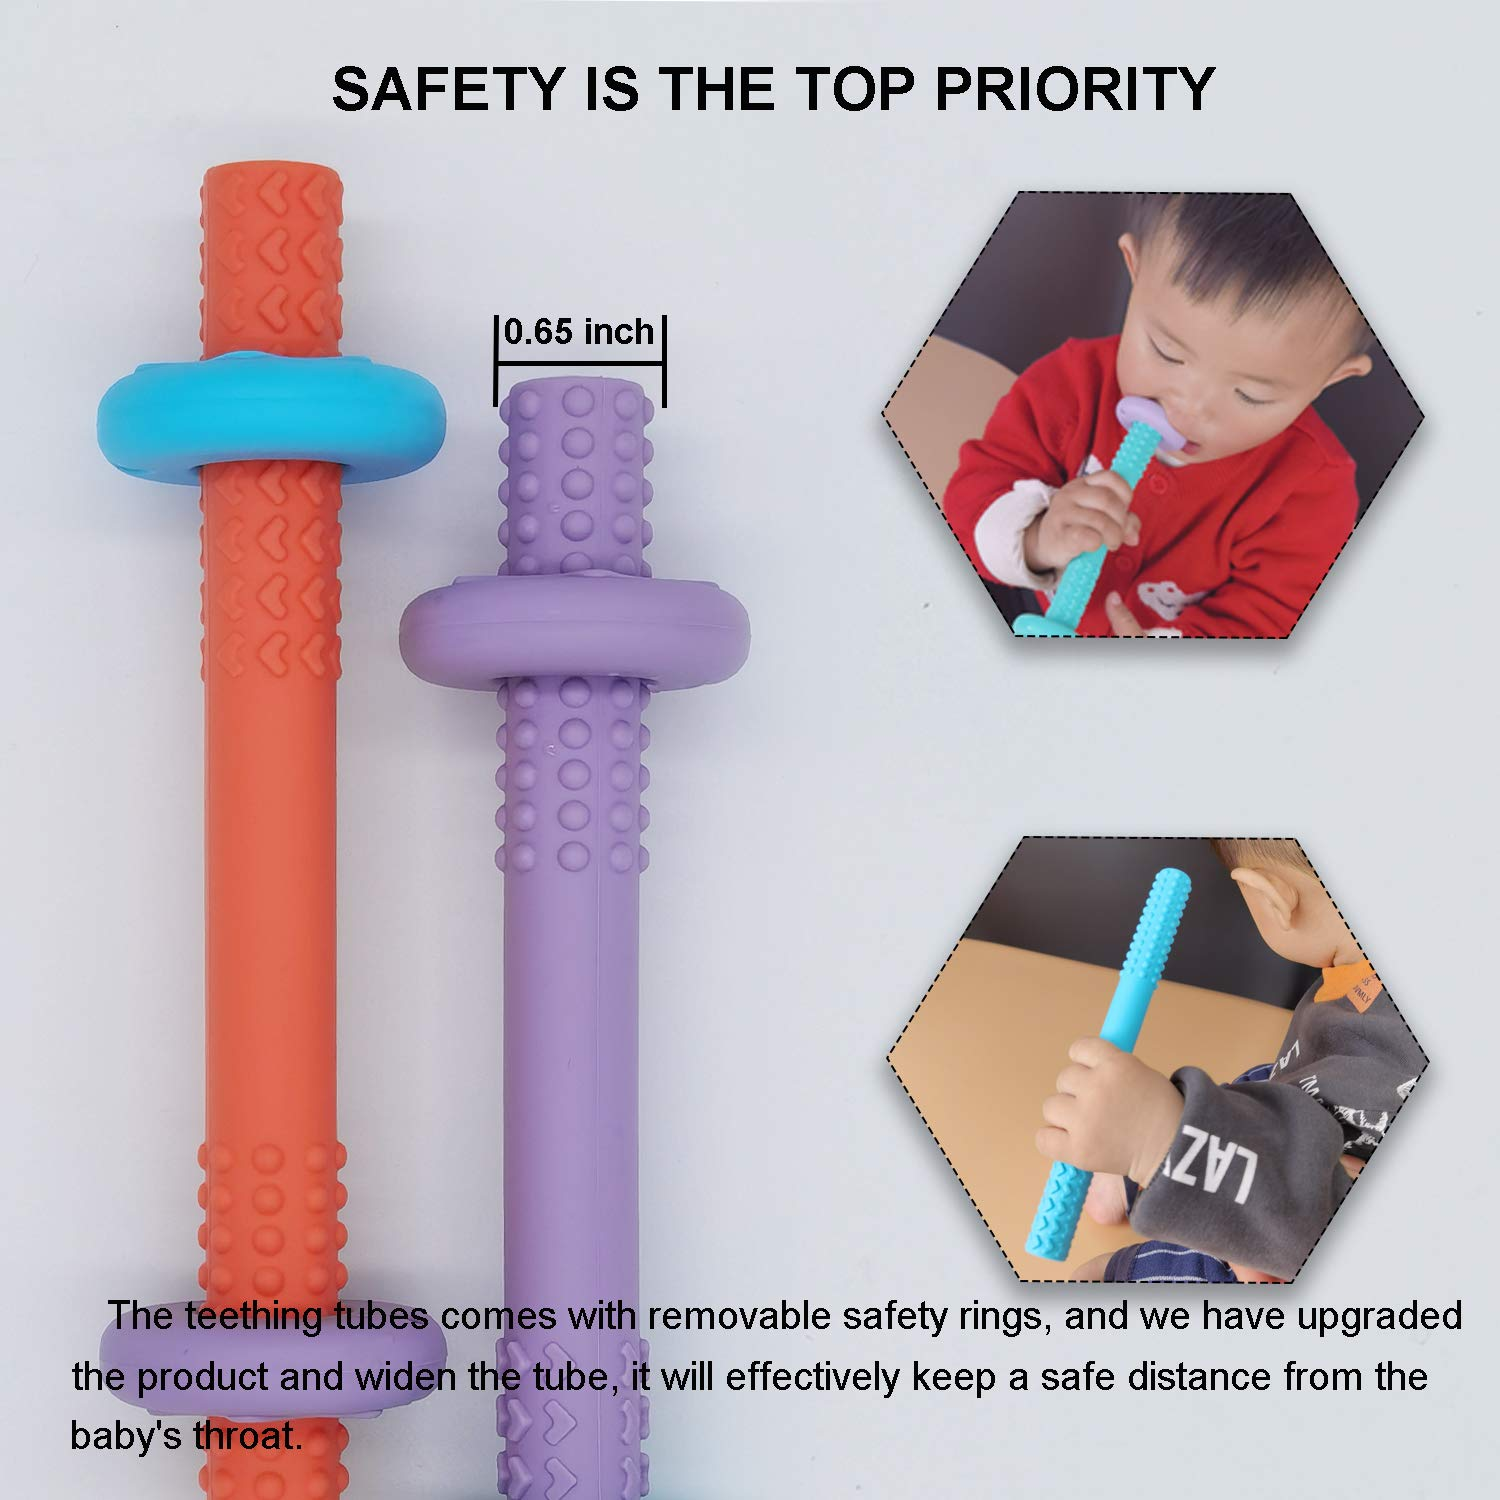 PEKUO Baby Hollow Teething Tubes with Safety Rings The Original Teether and Sensory Baby Toy for 0+ Months Food-Grade Soft Silicone BPA Free Freezer Safe Dishwasher Safe